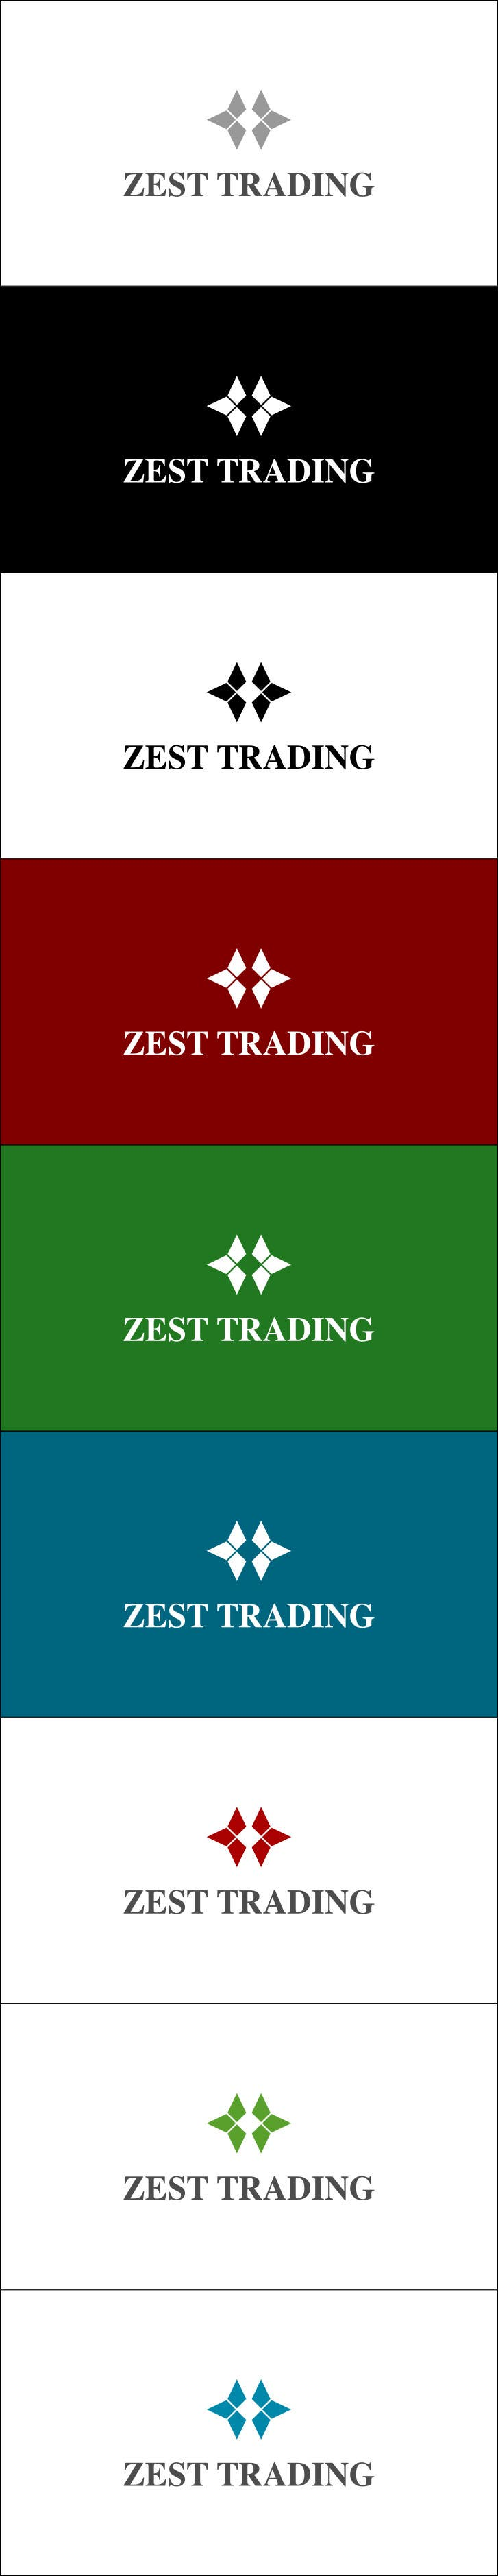 Contest Entry #64 for Design a Logo for Zest Trading